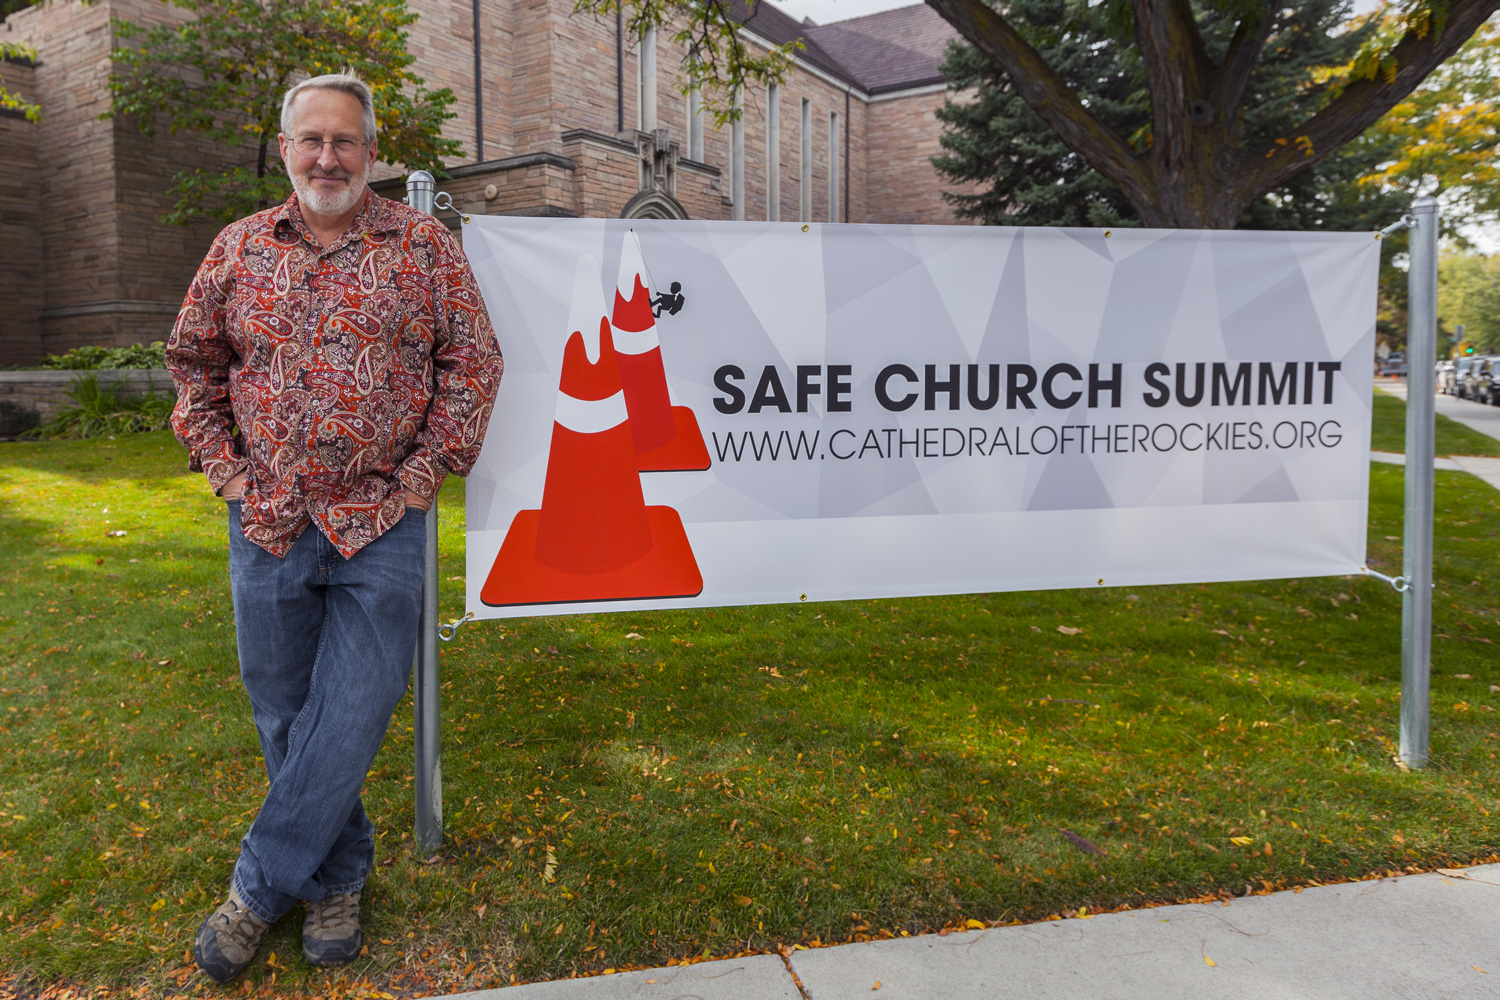 Cathedral of the Rockies, a United Methodist congregation, offers the Safe Church Summit.